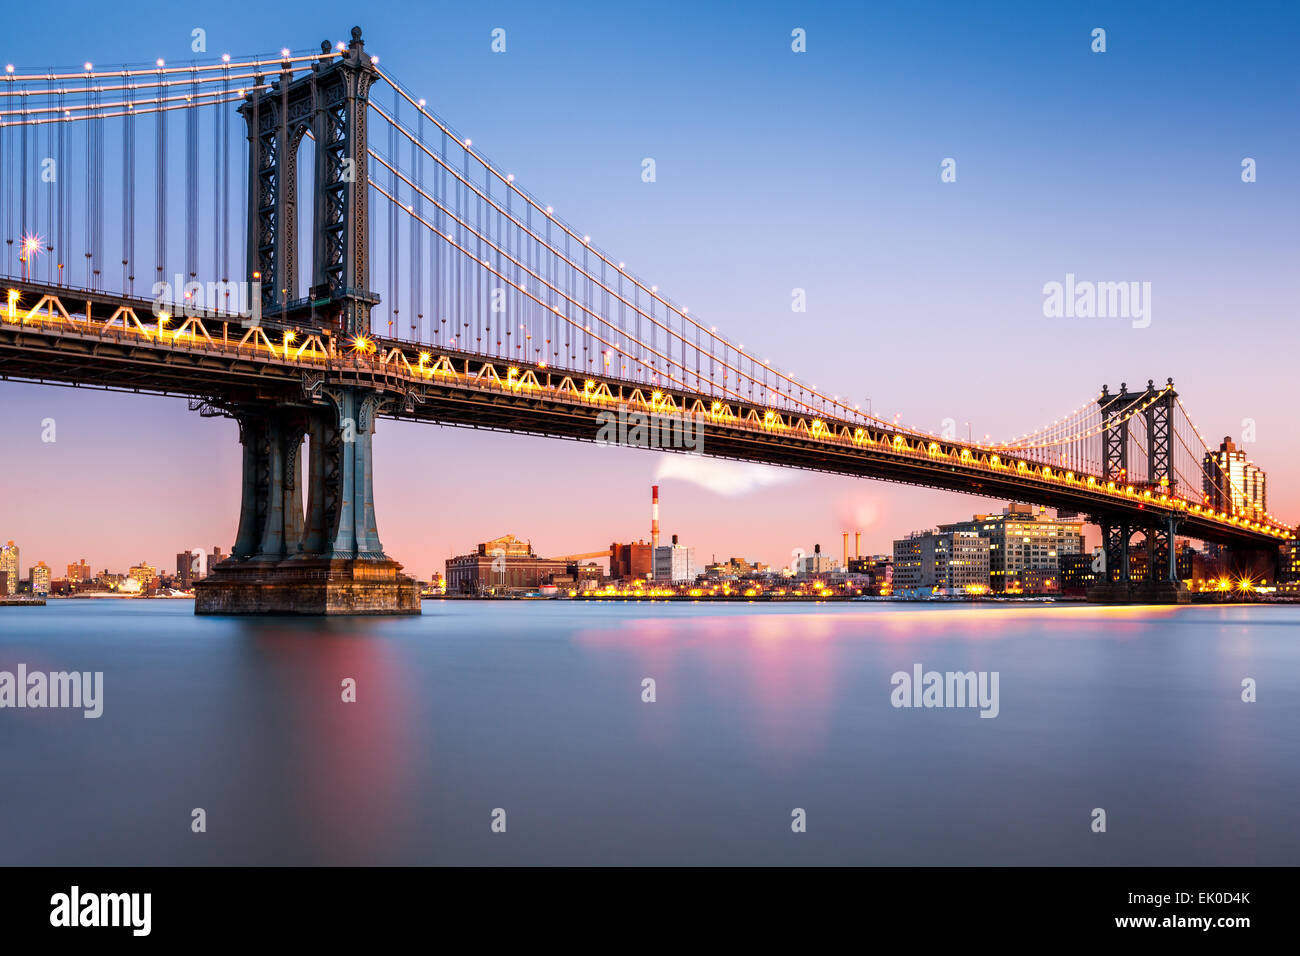 Manhattan Bridge illuminated at dusk (very long exposure for a perfectly smooth water) Stock Photo